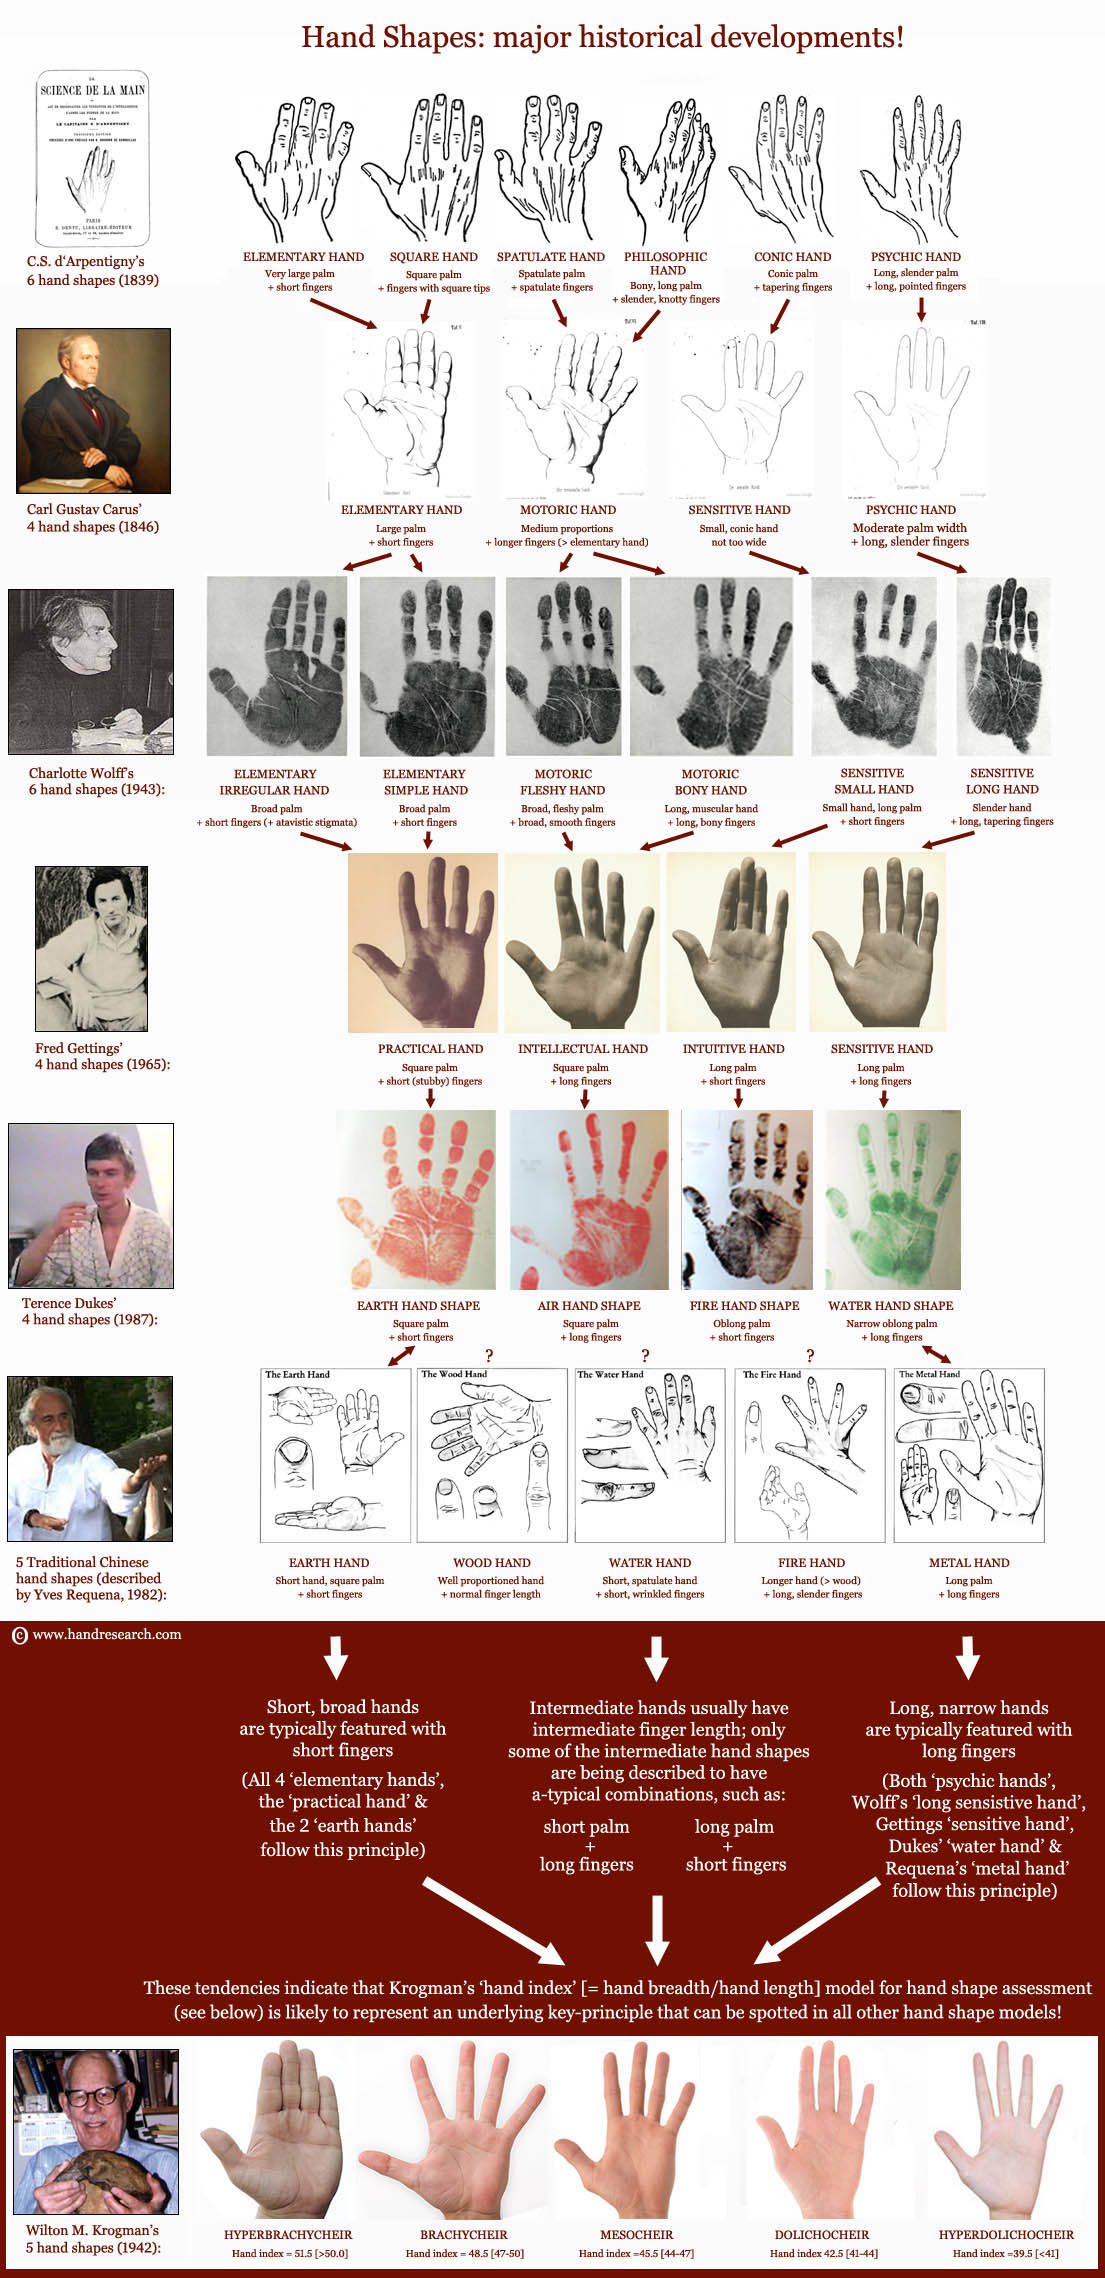 Handprints wanted Hand-shapes-historical-developments